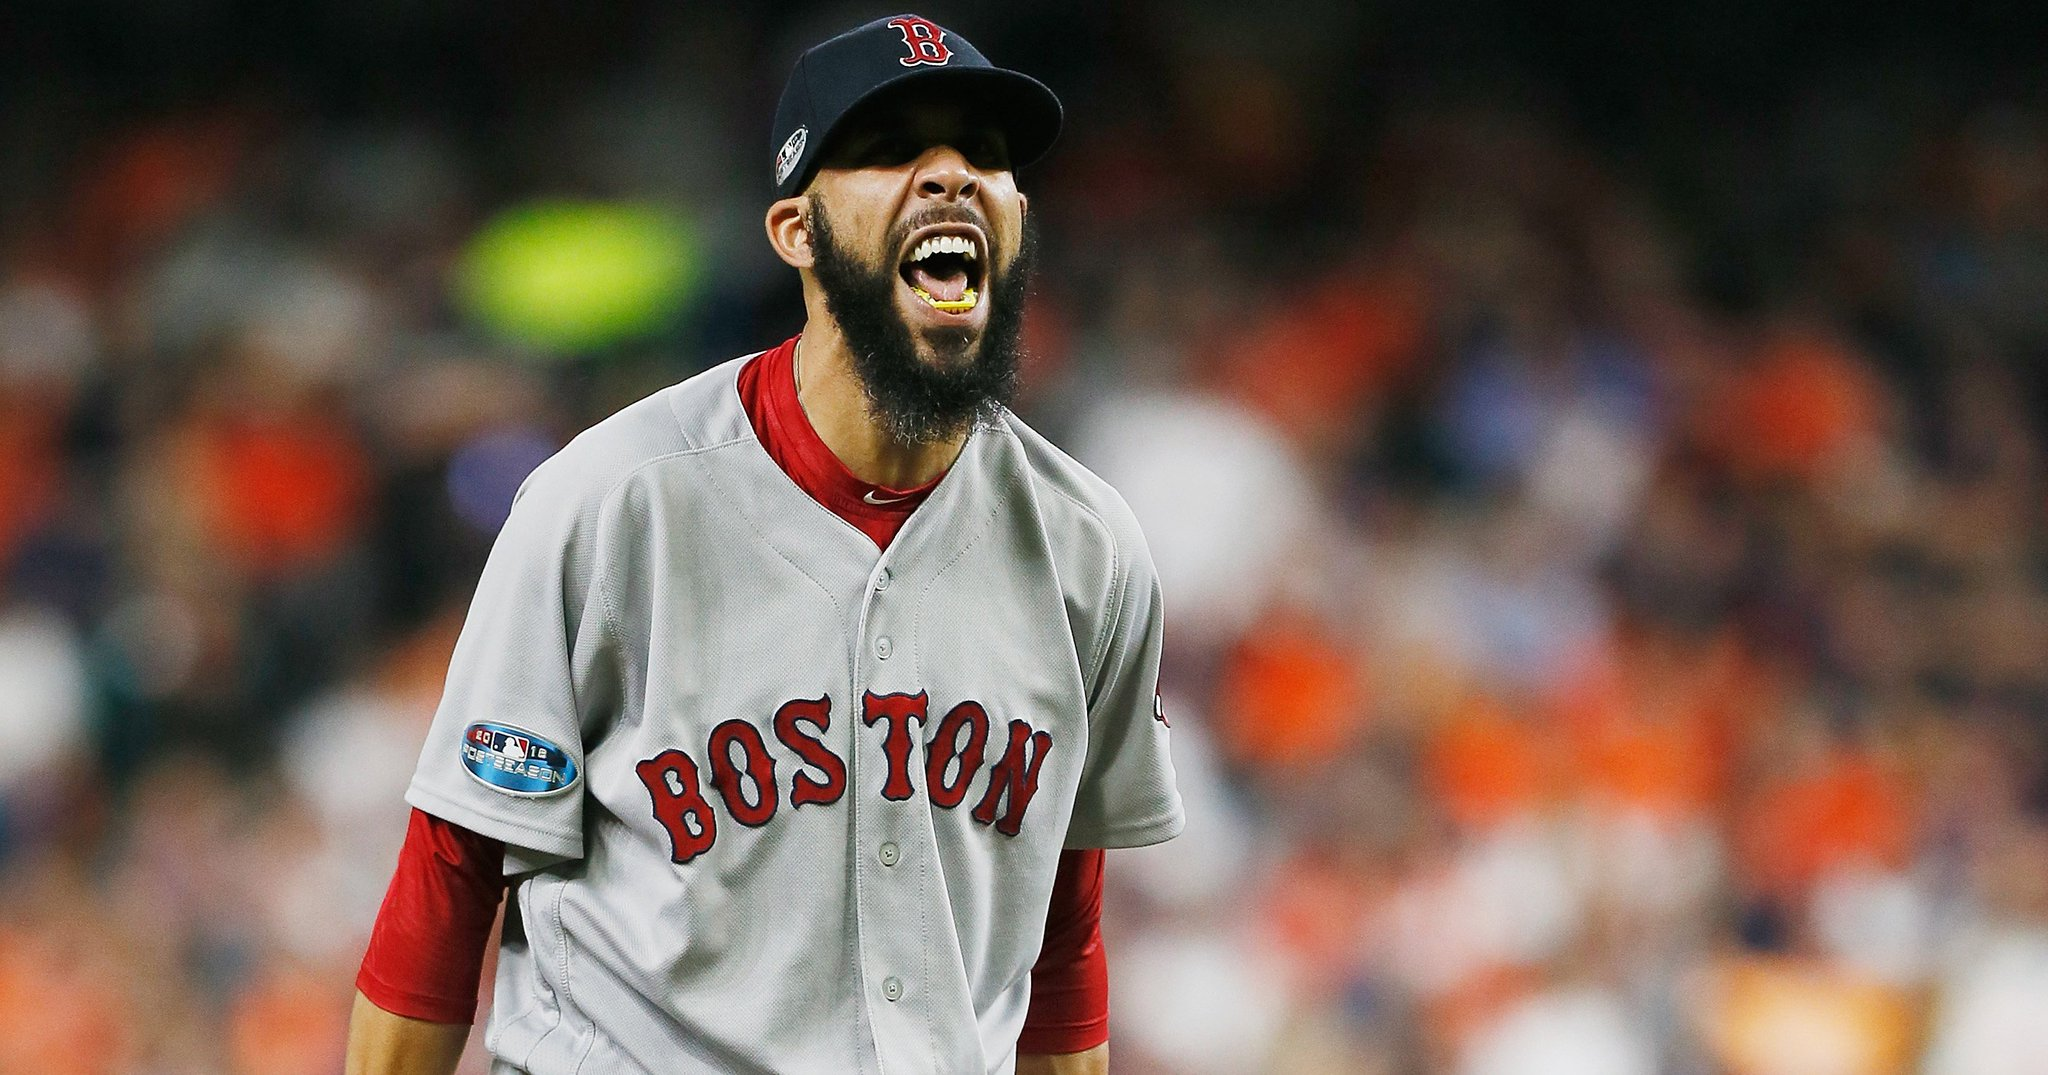 Alex Cora defends David Price from media criticism after Game 5 gem. https://t.co/DpqYPtMXrC https://t.co/RubLvWPDyR